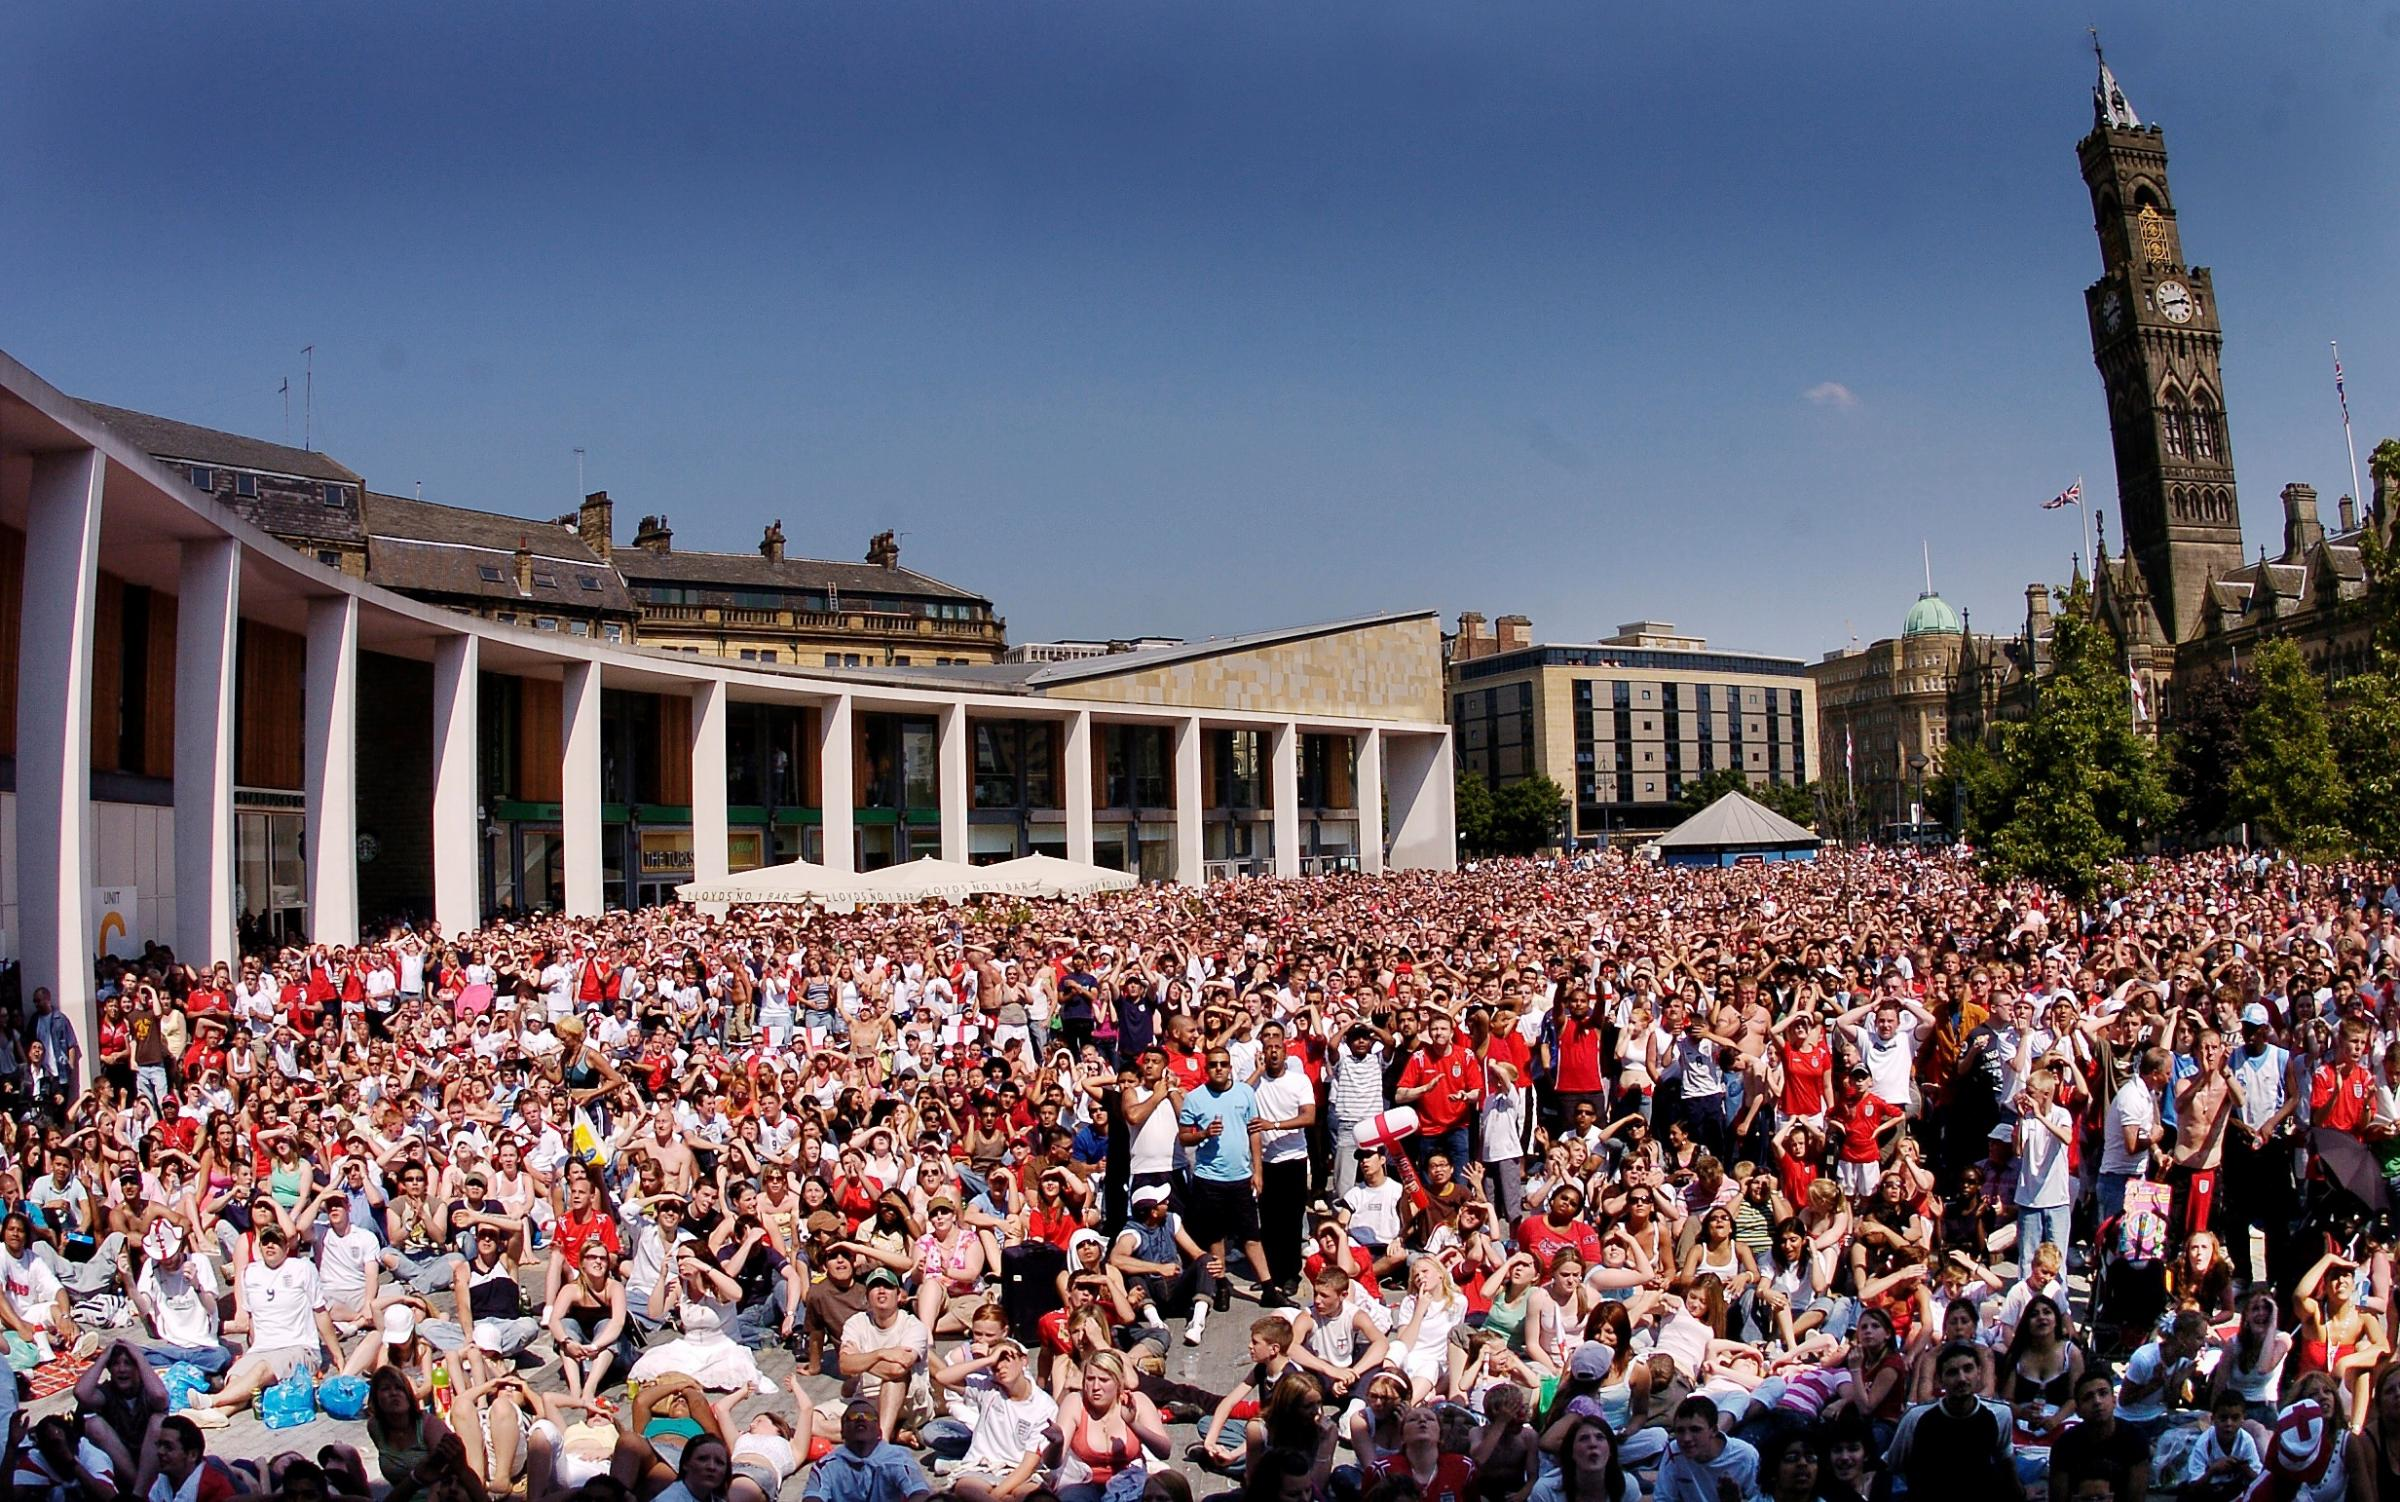 NOSTALGIA: Bradford Centenary square was filled with football fans in 2006